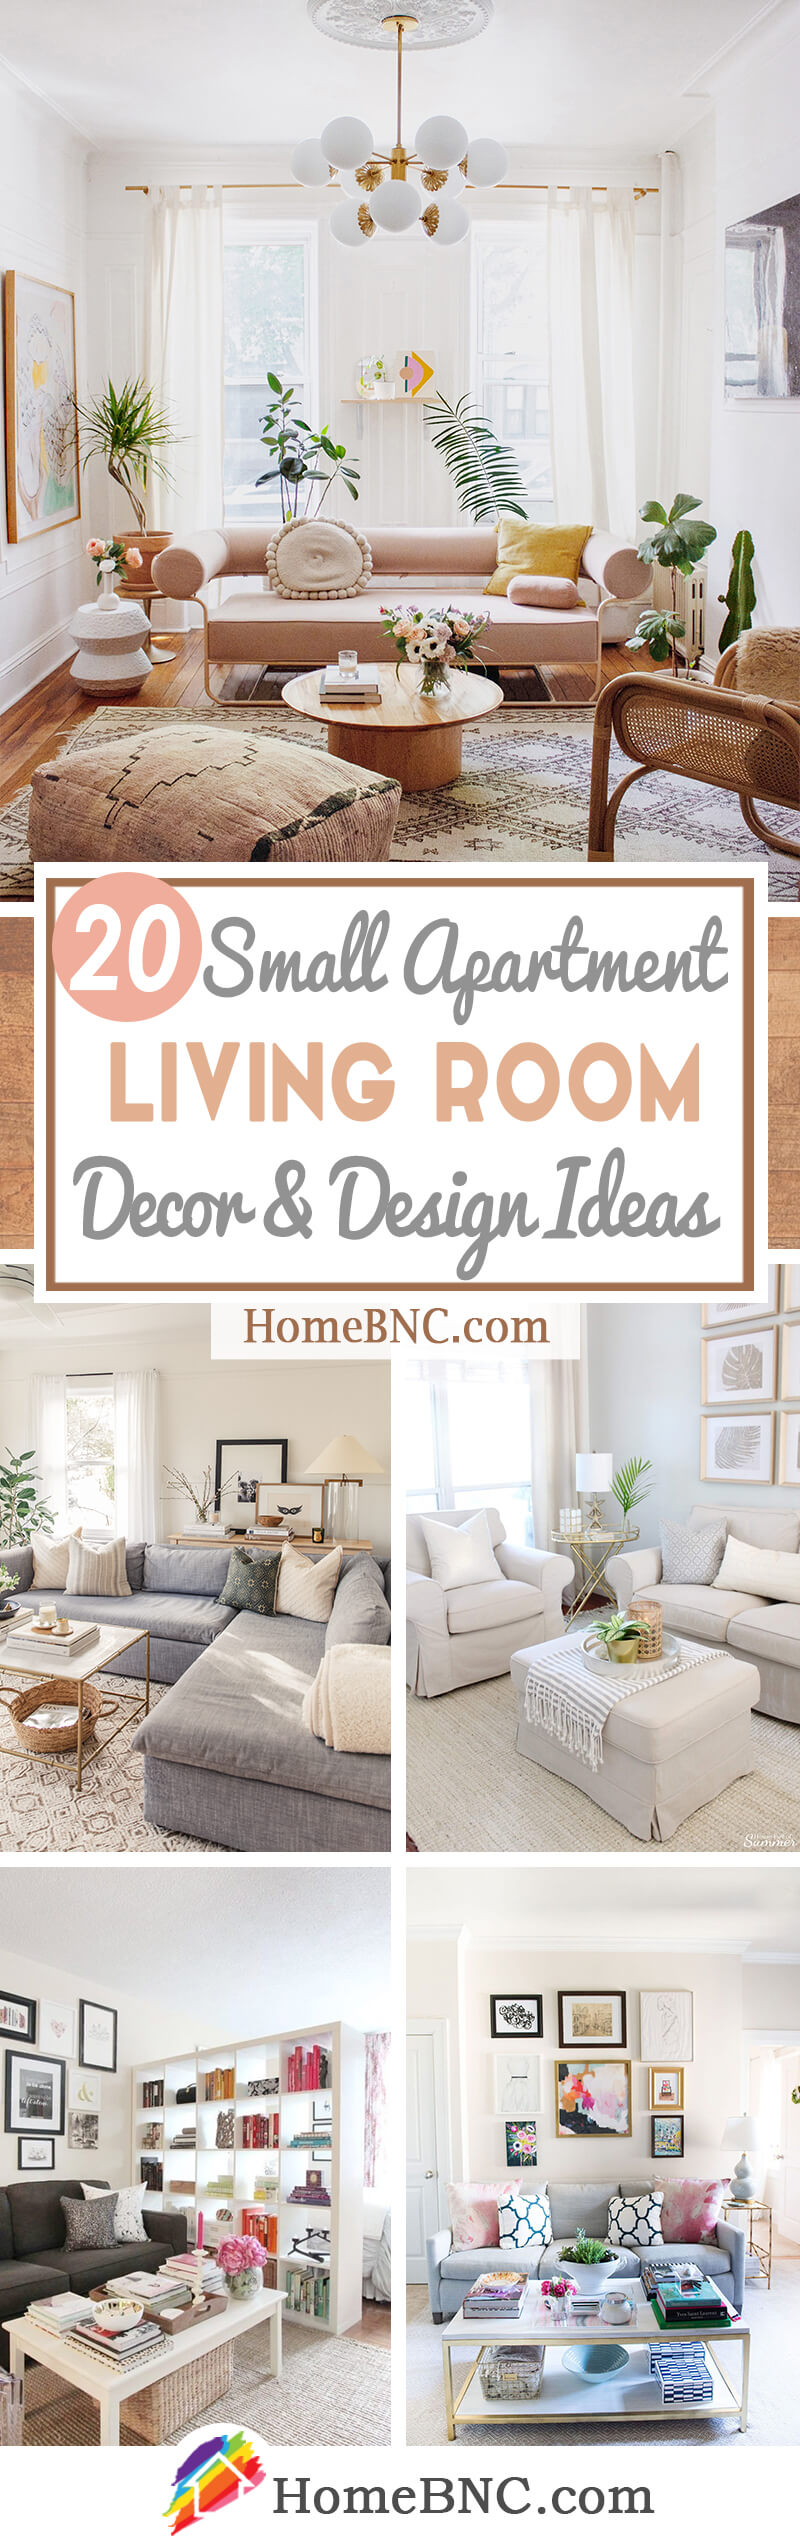 20 Fresh Small Apartment Living Room Design And Decor Ideas To Make The  Most Of Your Space